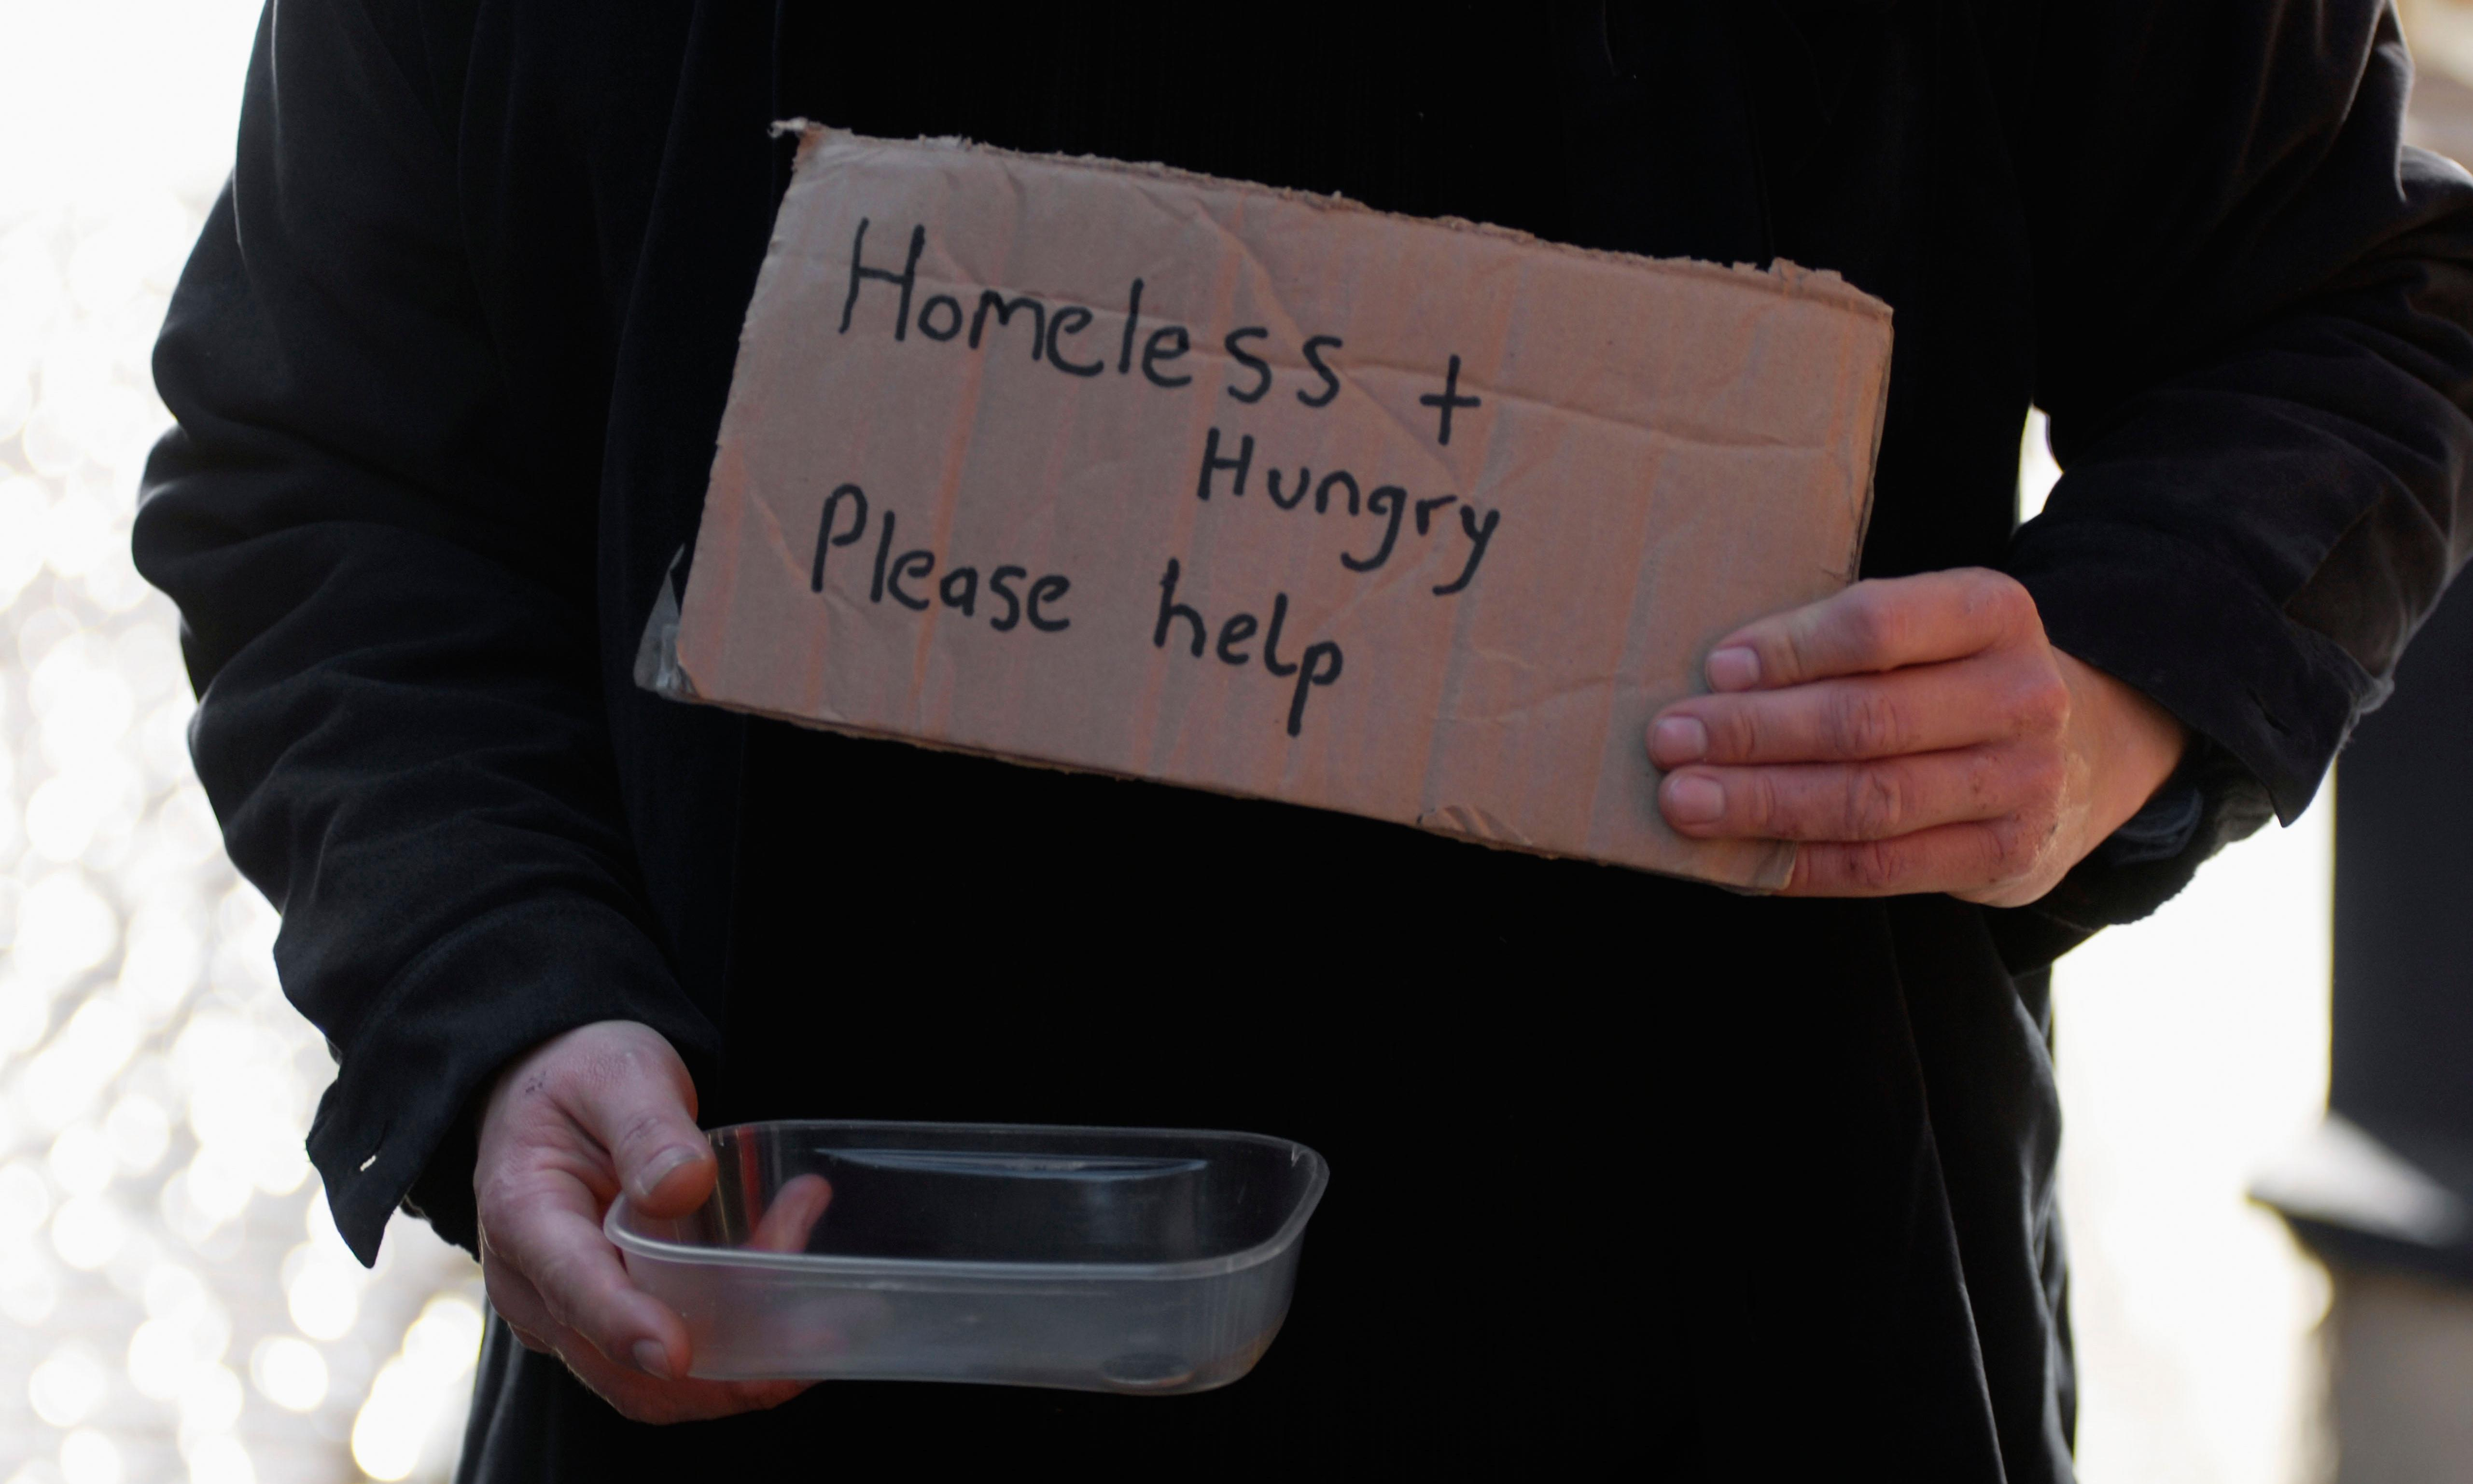 The government wants to deport rough sleepers. We must resist this immoral act